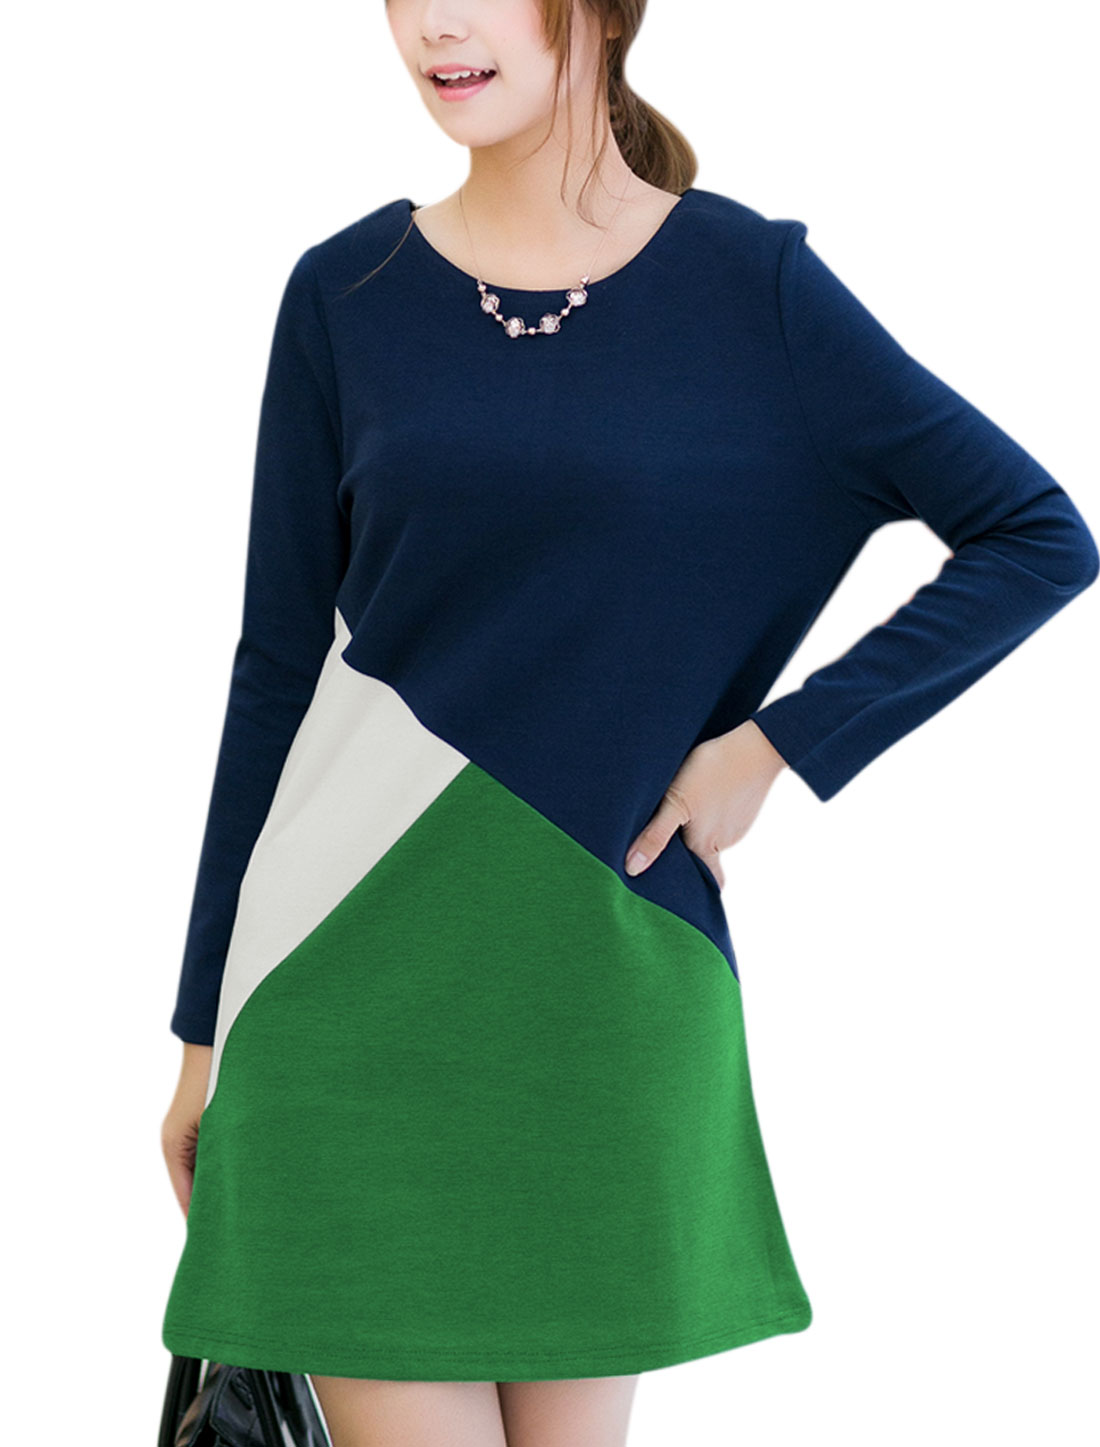 Women Round Neck Long Sleeved Colorblocking Tunic Dress Green Navy Blue S